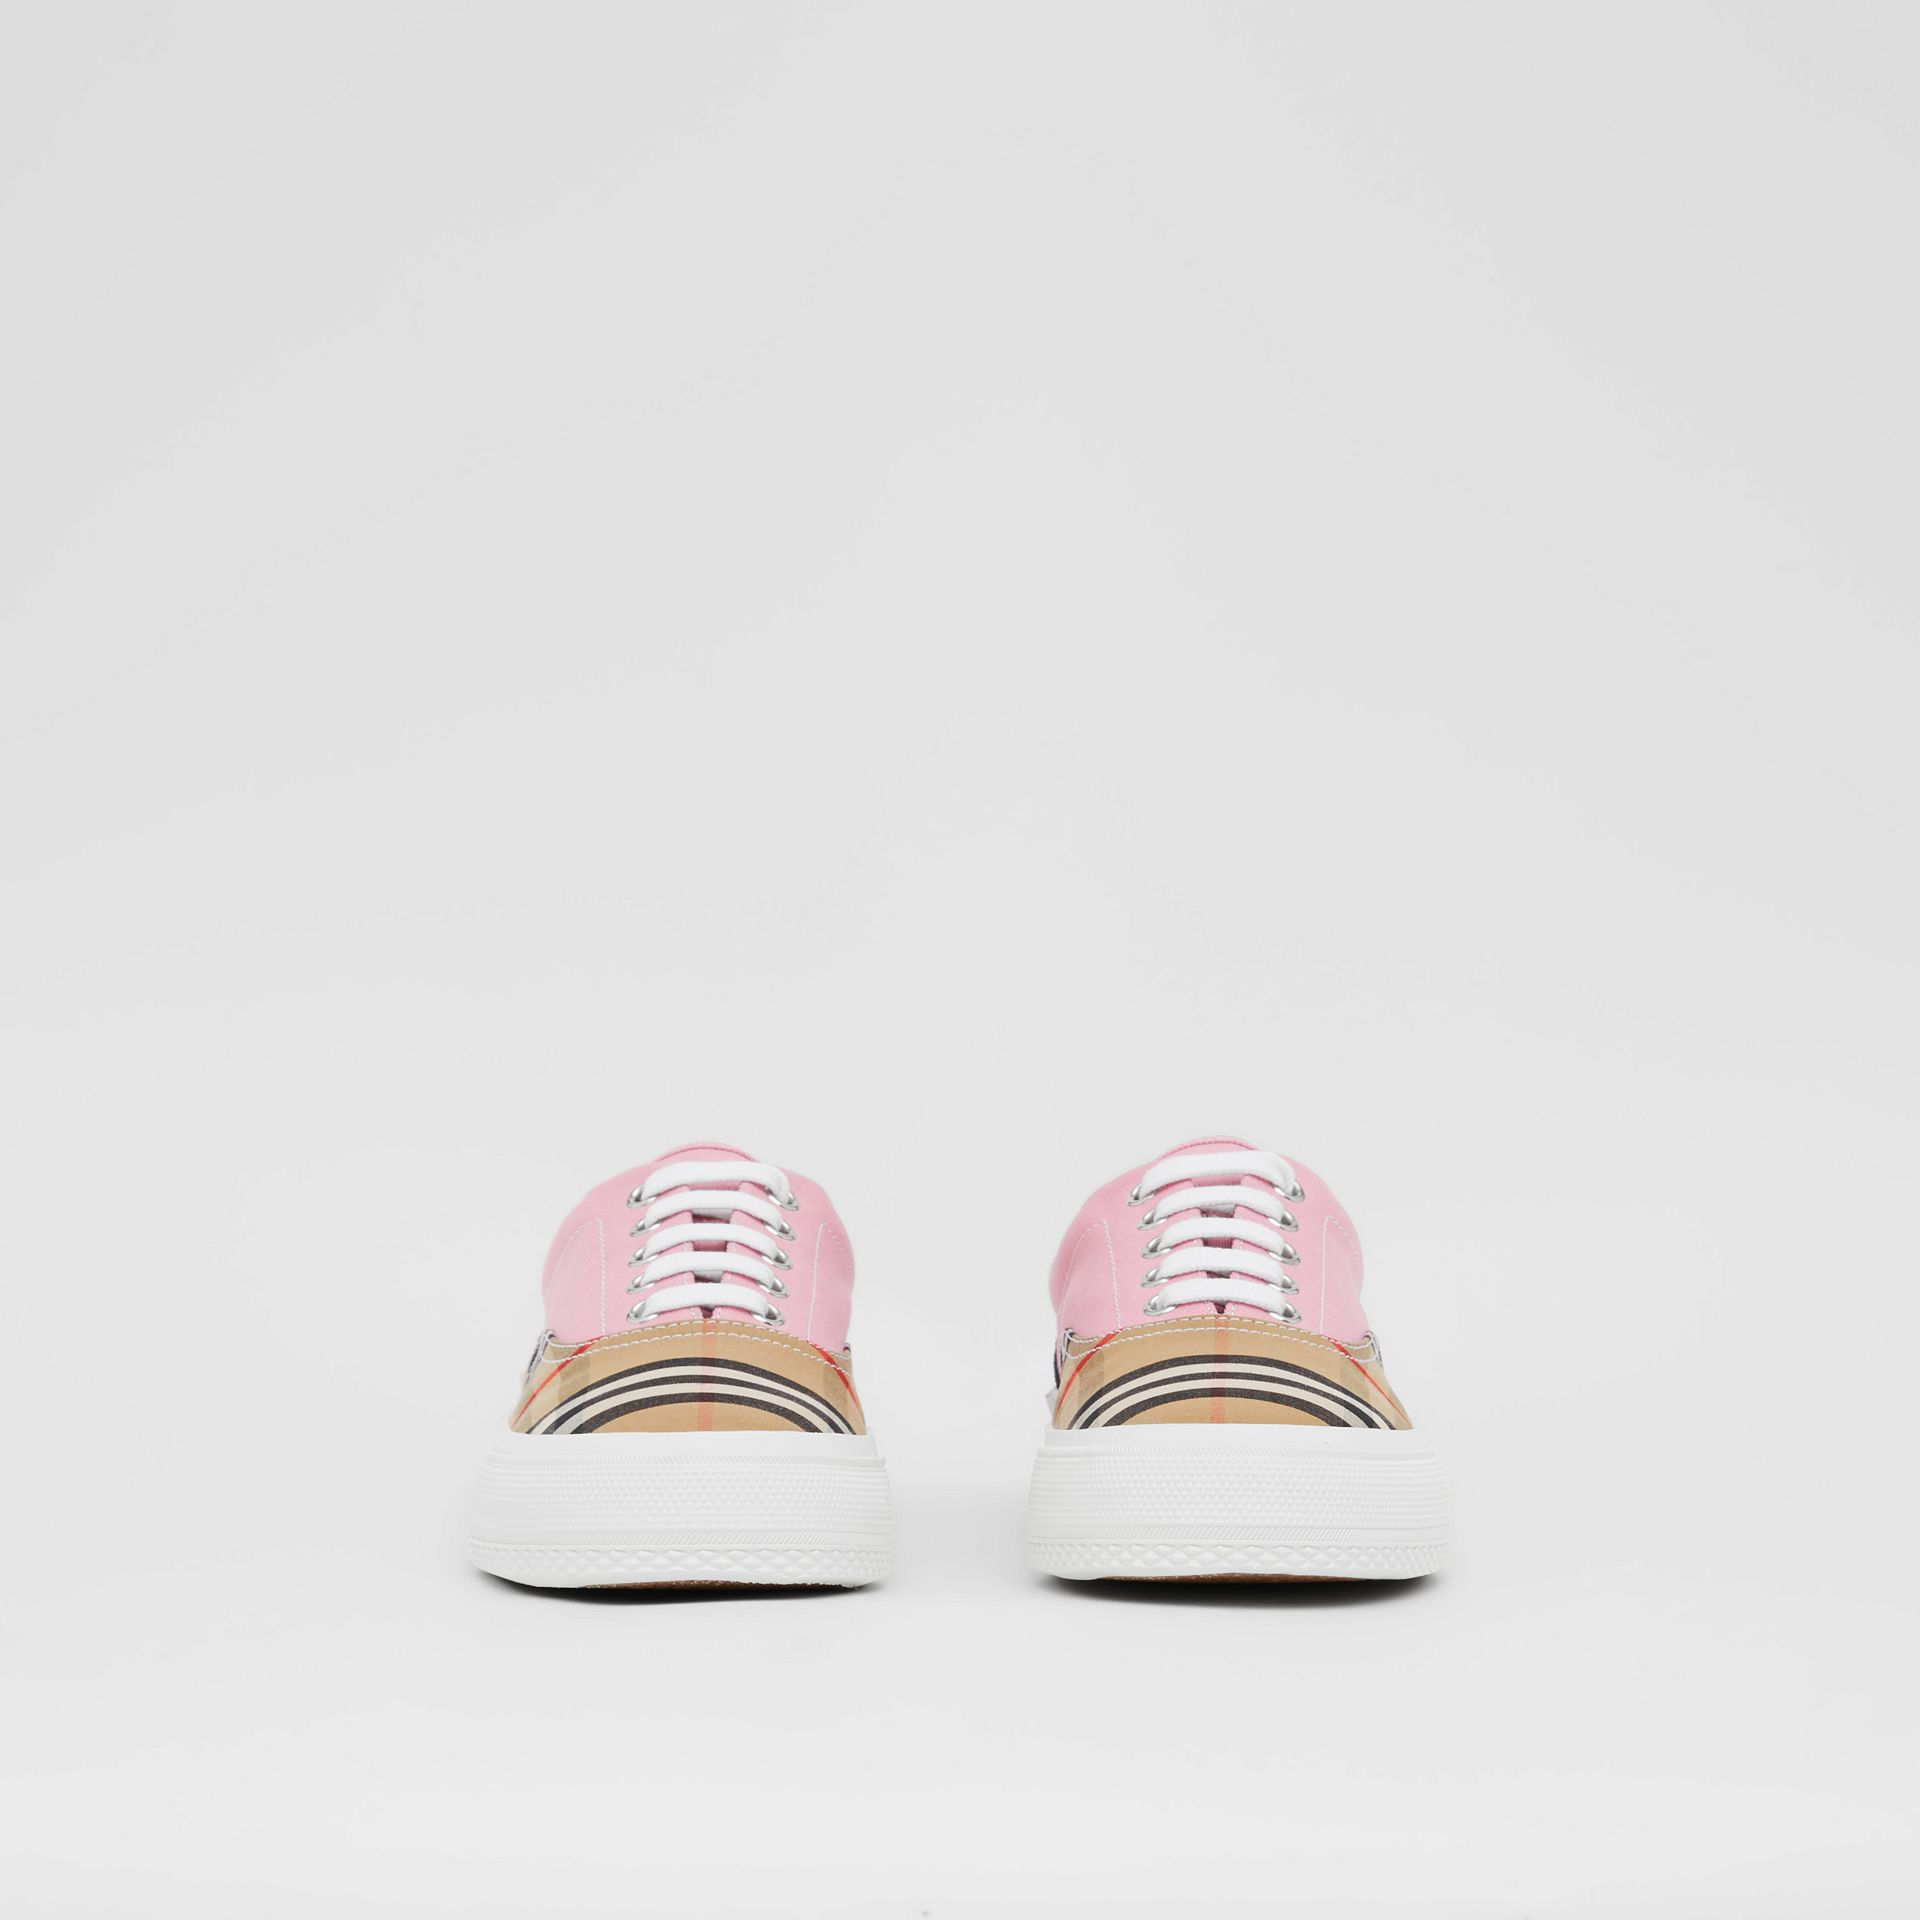 Vintage Check, Cotton Canvas and Suede Sneakers in Archive Beige/pink - Women | Burberry - gallery image 3